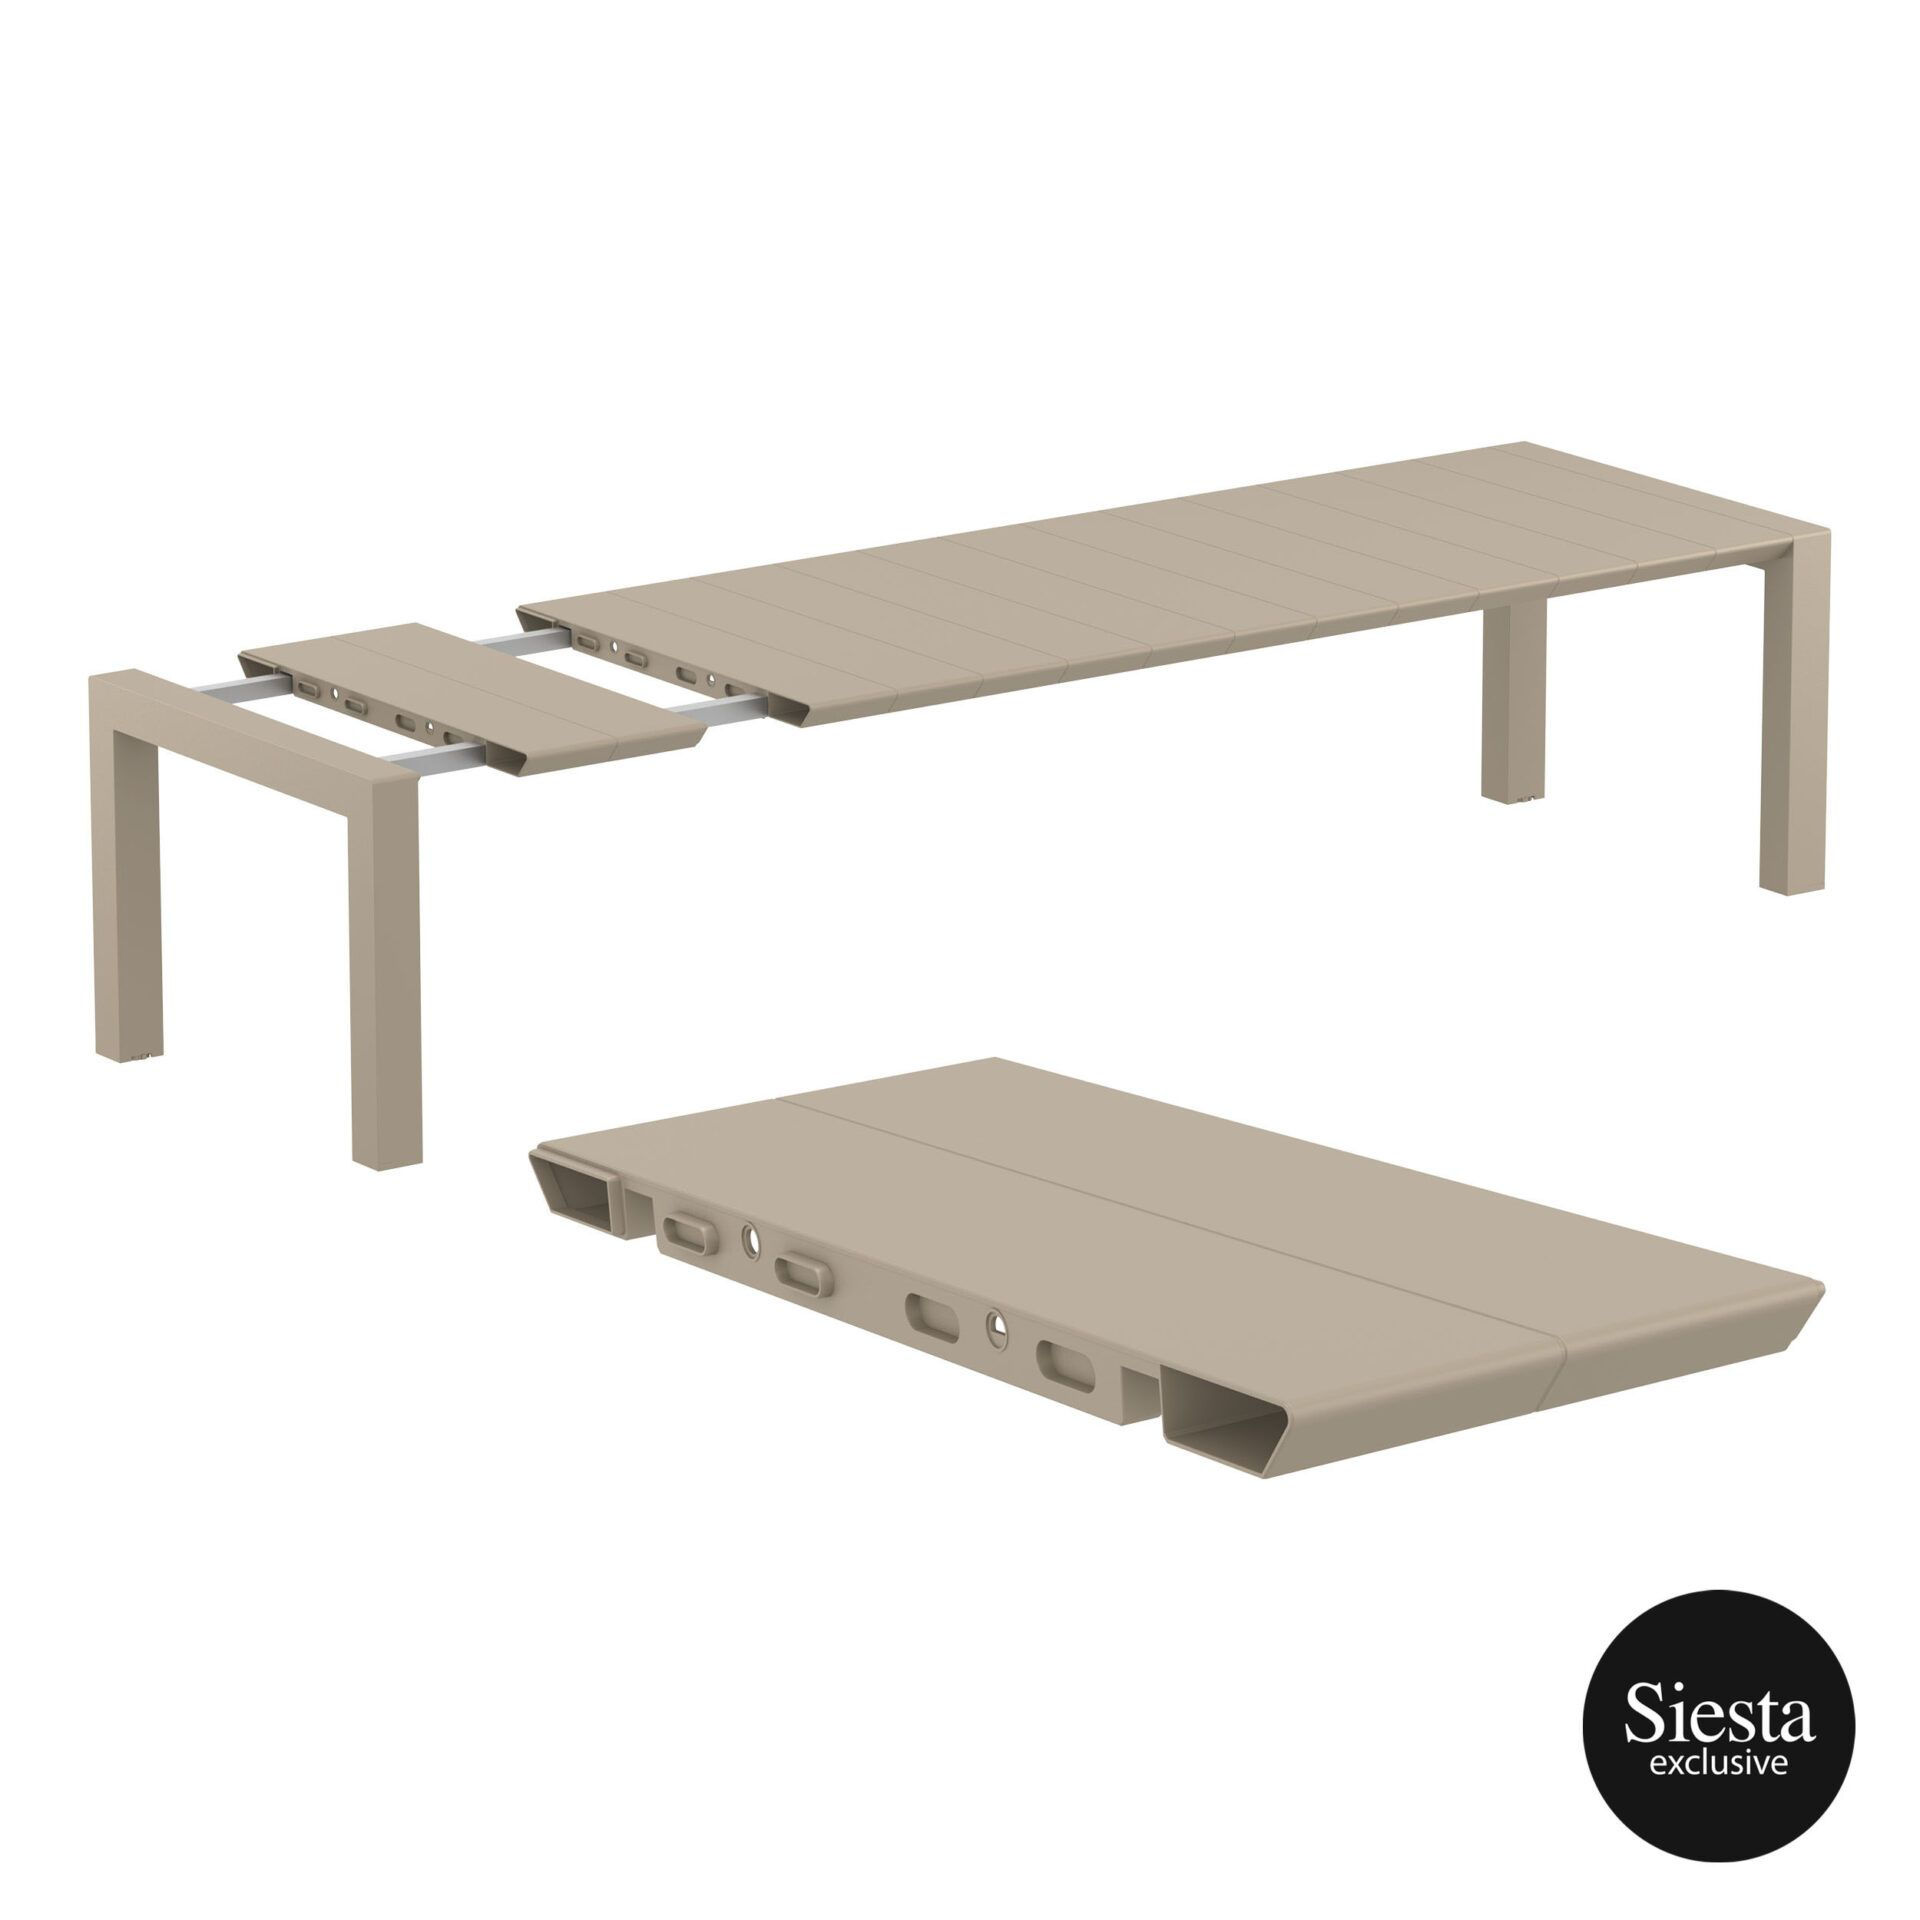 009 vegas table xl 300 taupe extension part